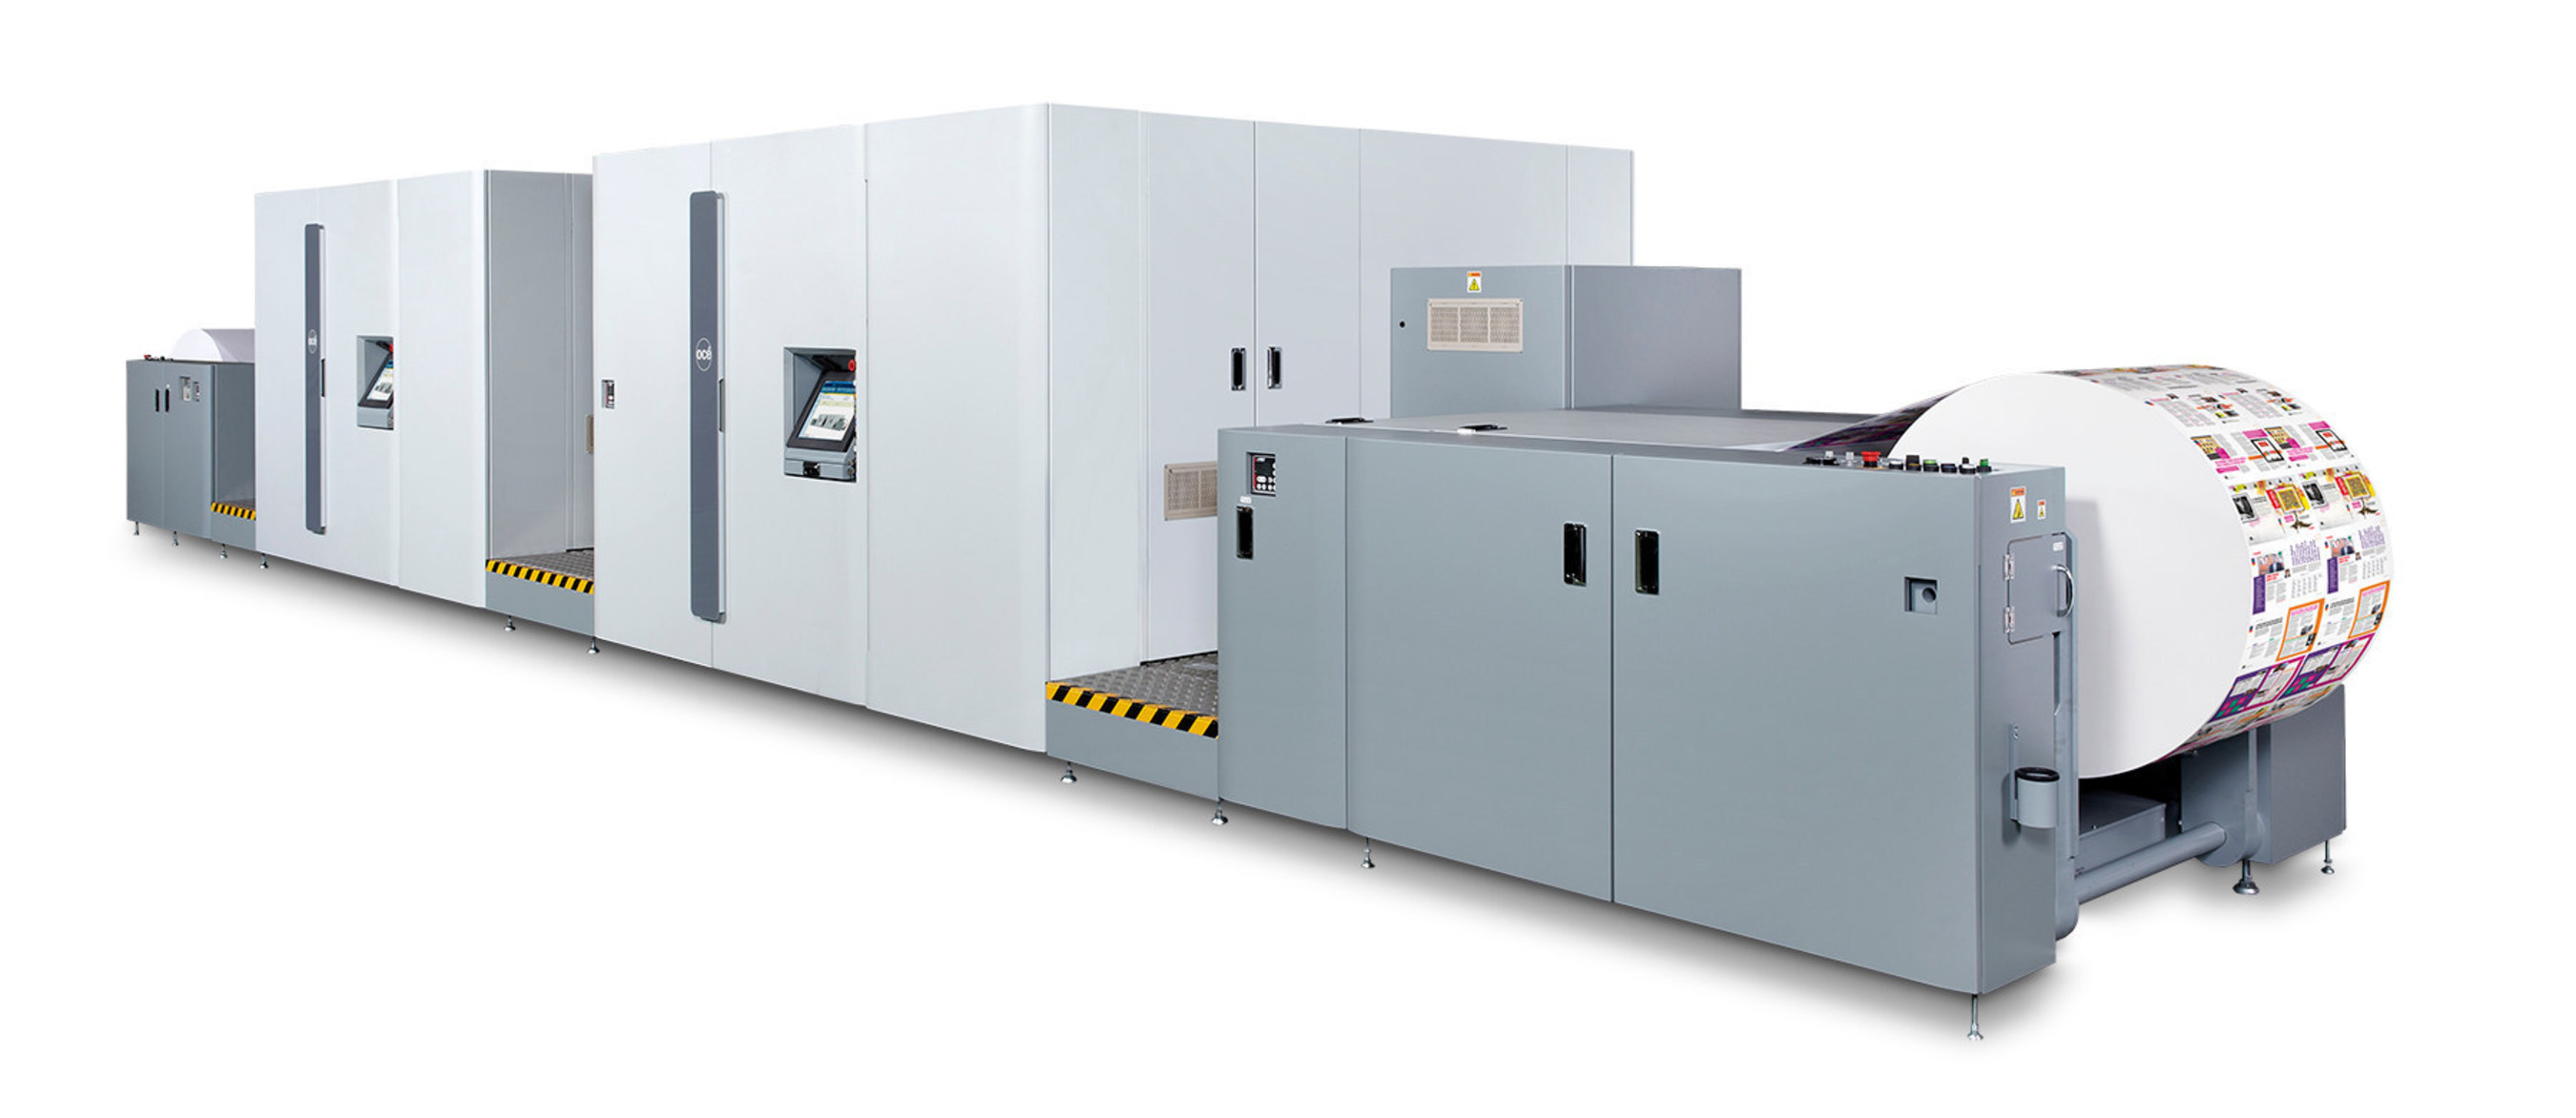 IWCO Direct has purchased the full-color continuous feed inkjet Oce ImageStream(R) 3500 from Canon Solutions America.